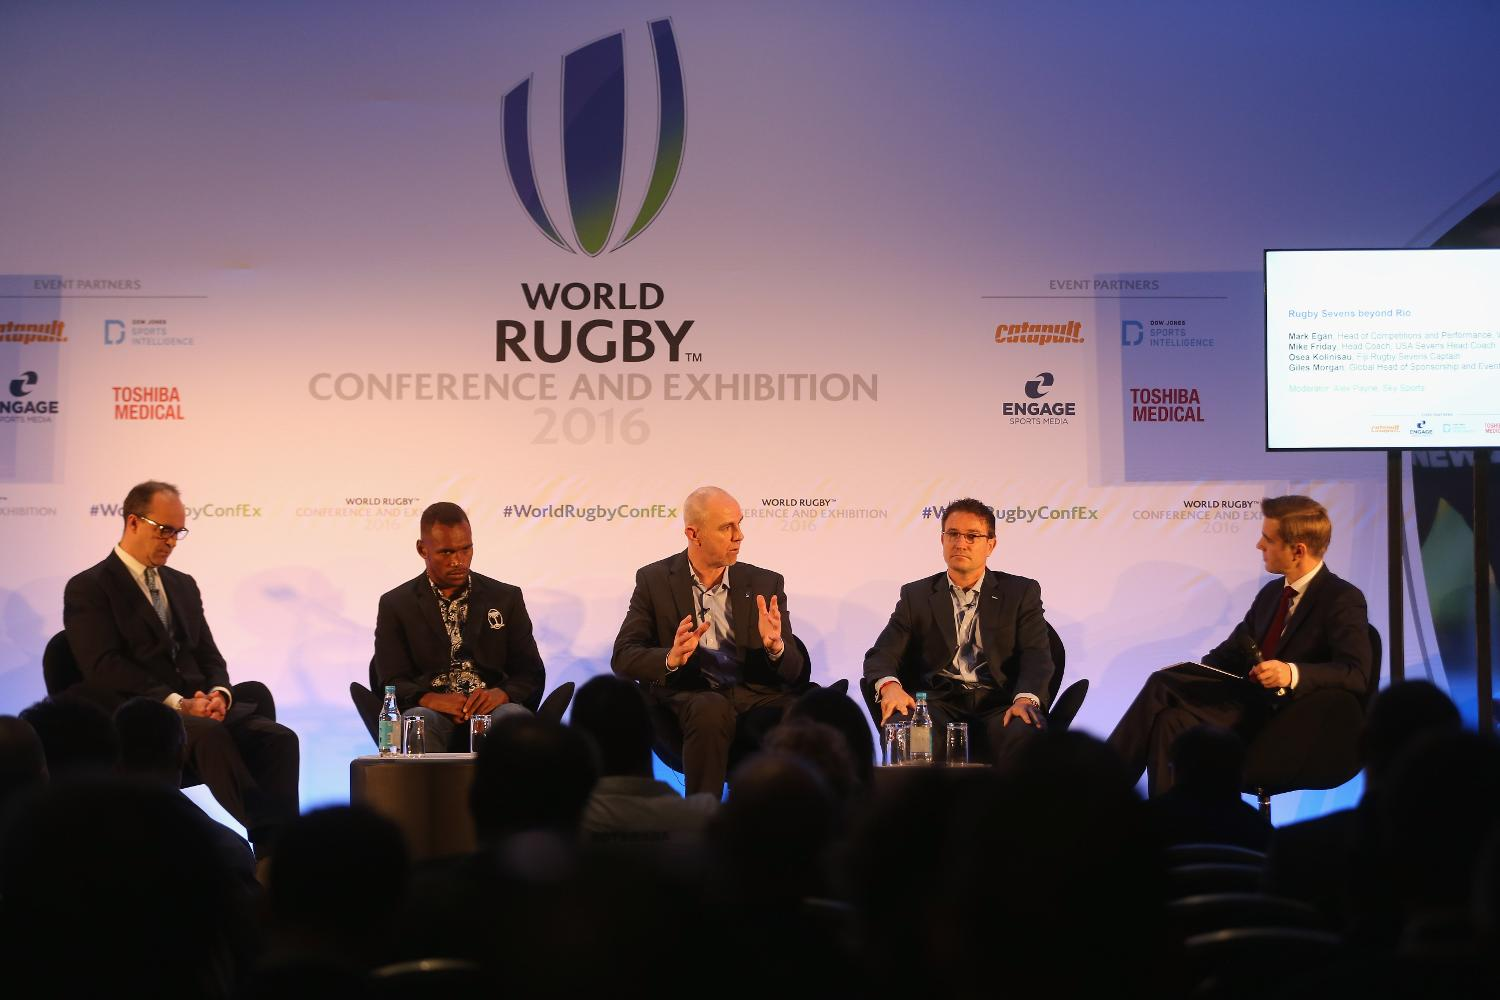 World Rugby ConfEx 2016 - Day 1